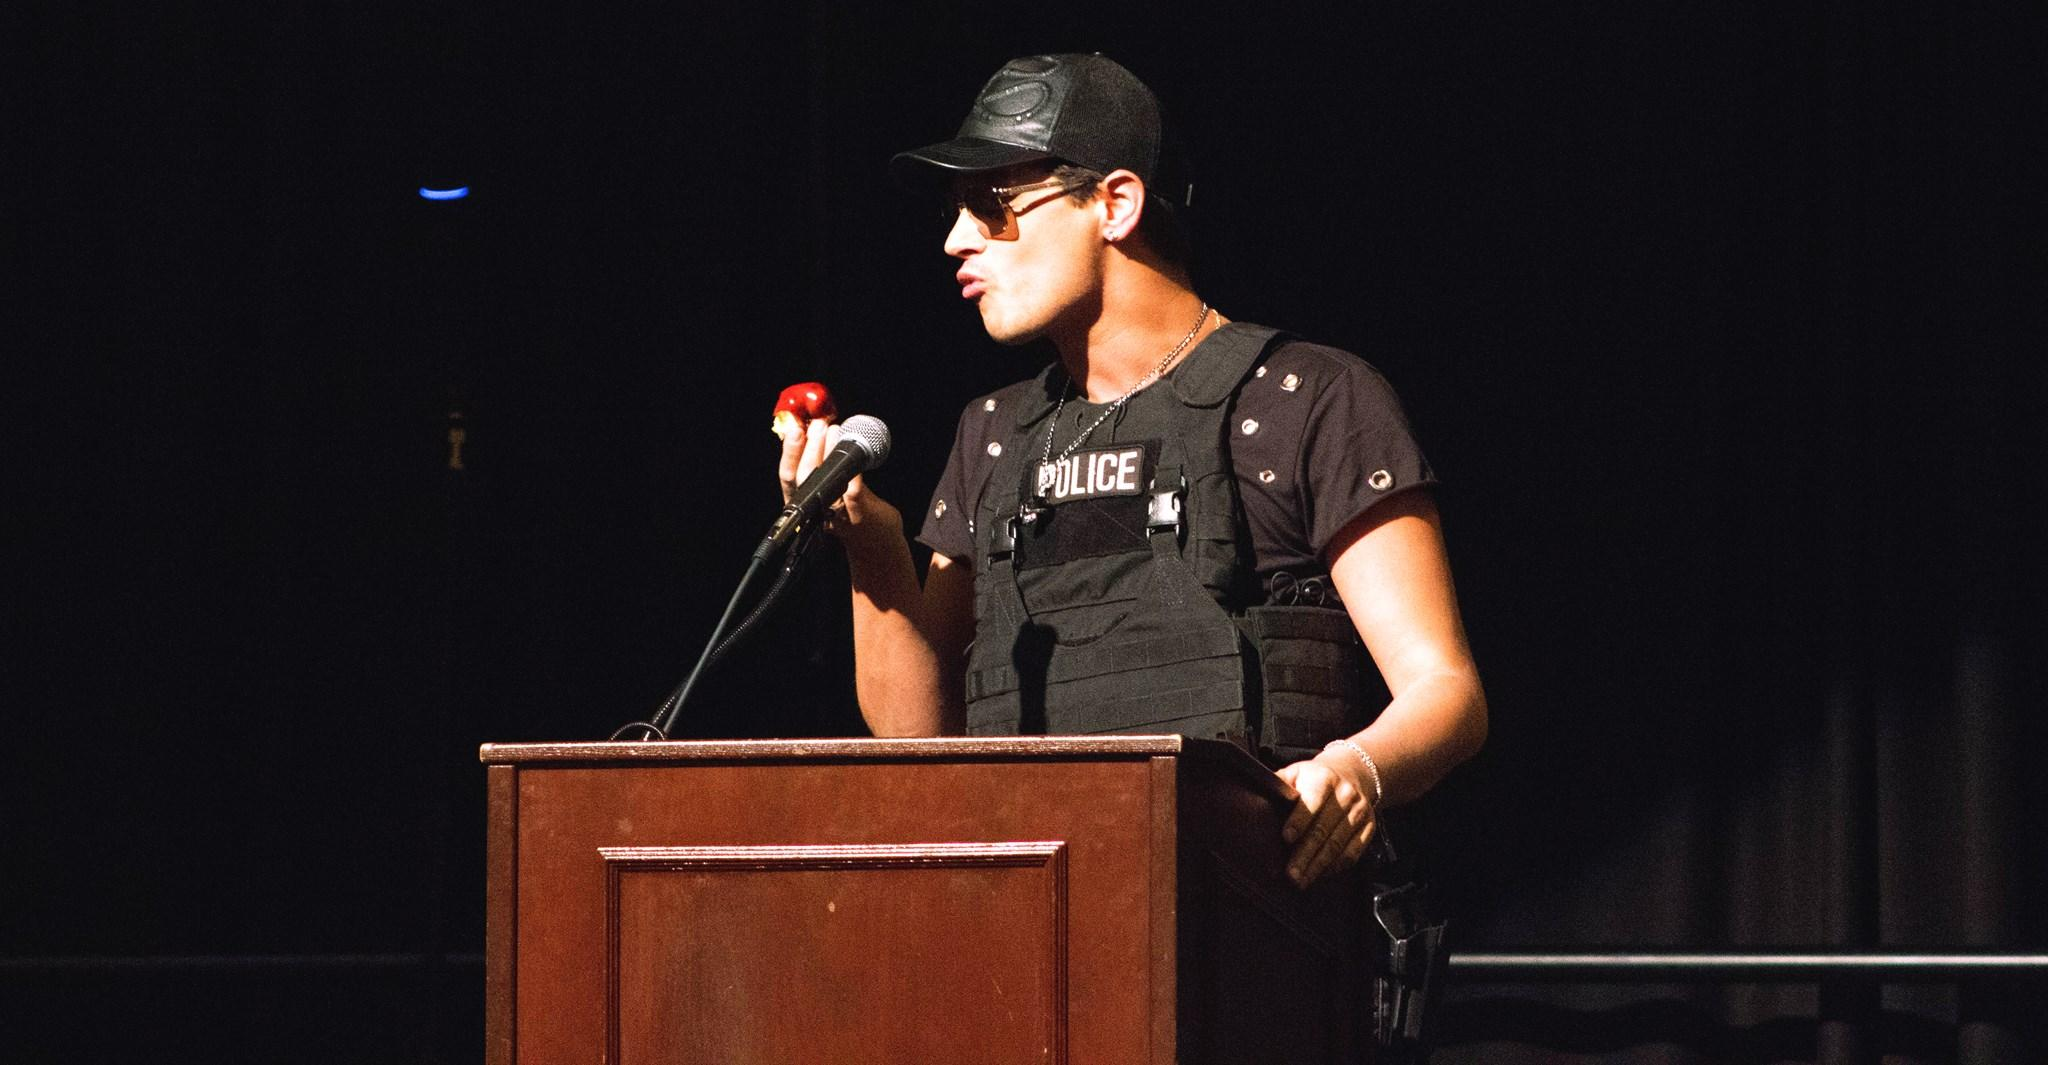 Milo Yiannopoulos speaking at the University of New Mexico.